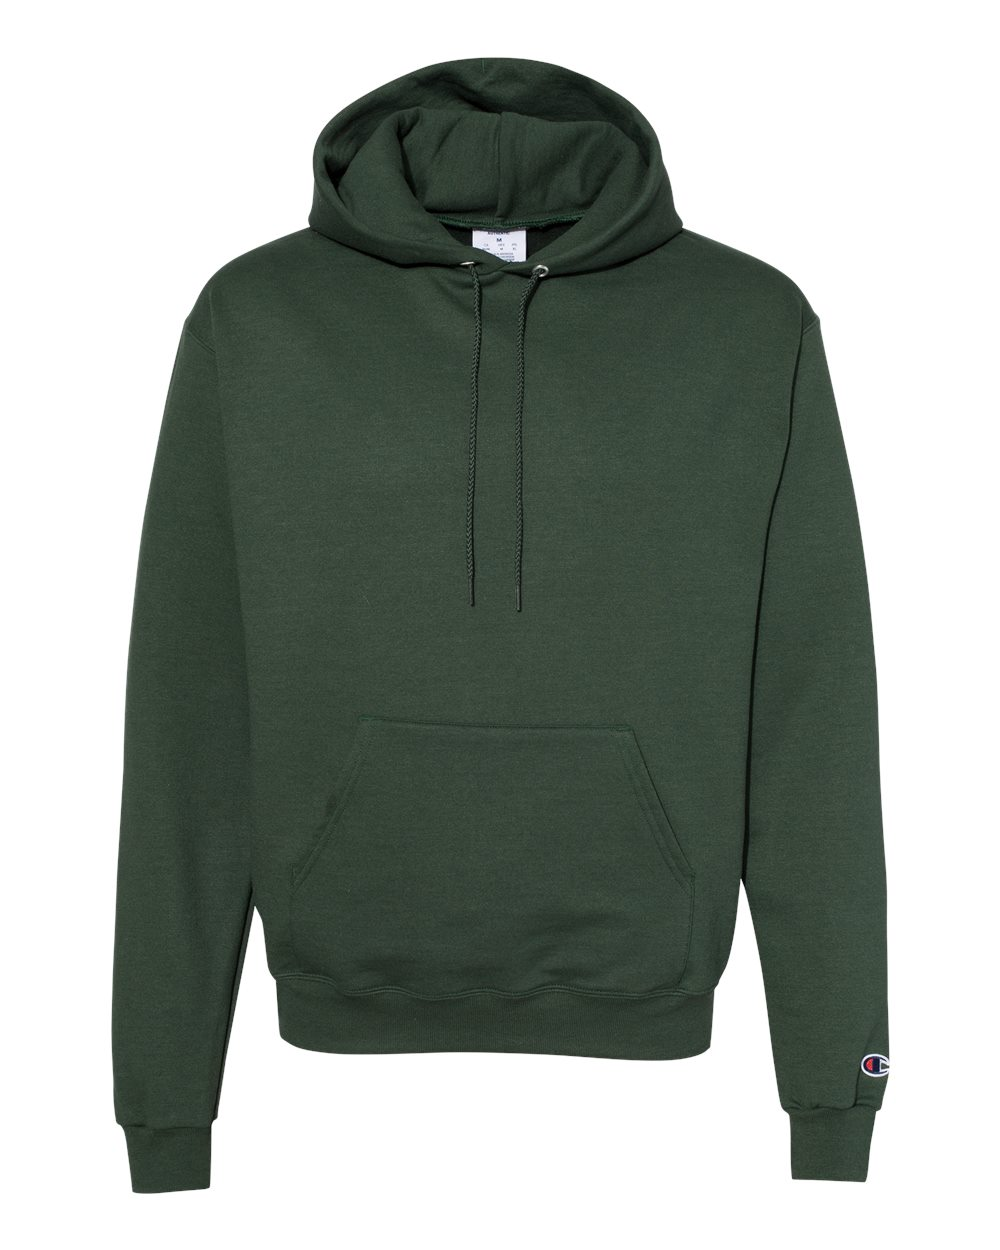 Champion-Mens-Double-Dry-Eco-Hooded-Sweatshirt-Hoodie-Pullover-S700-up-to-3XL miniature 12